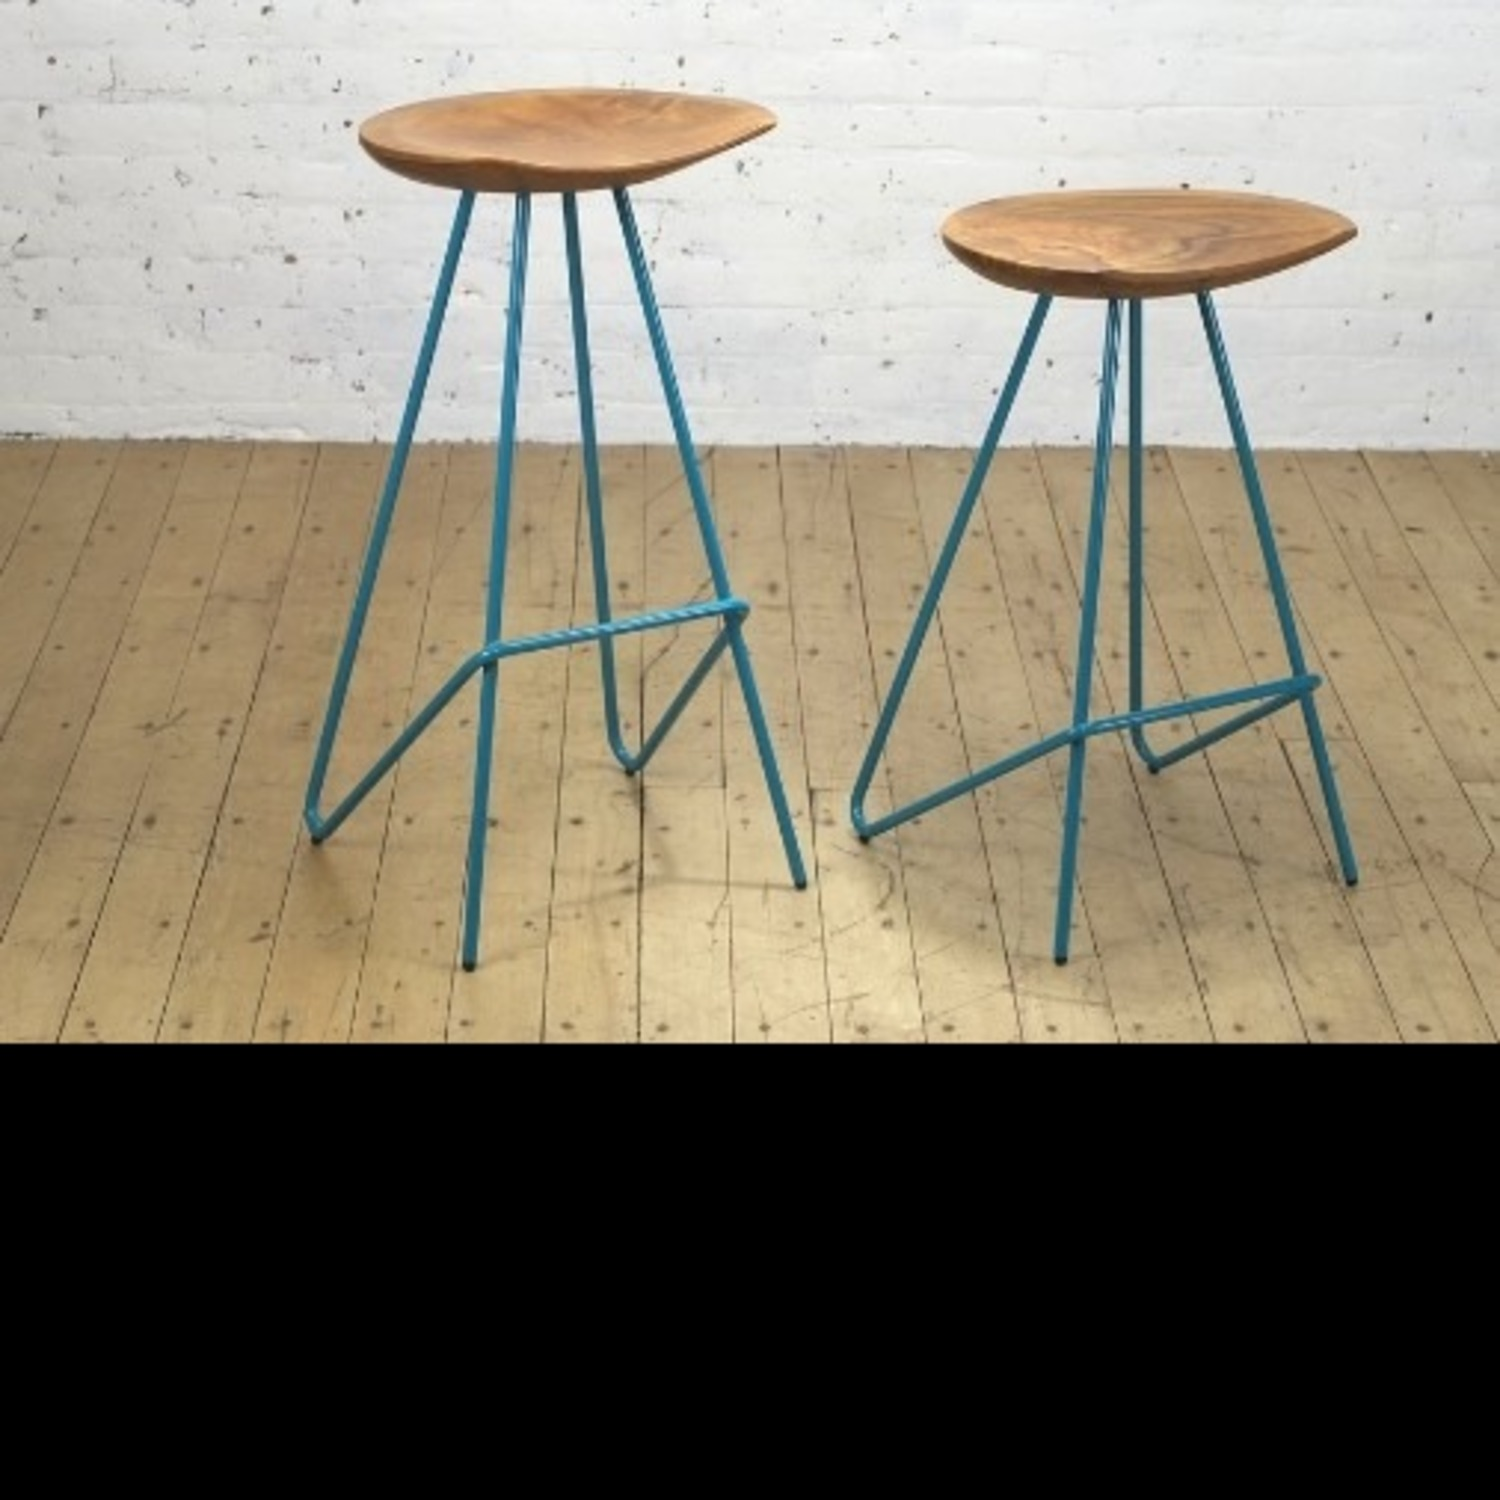 From The Source Perch Counter Stools - Set of 2 - image-5